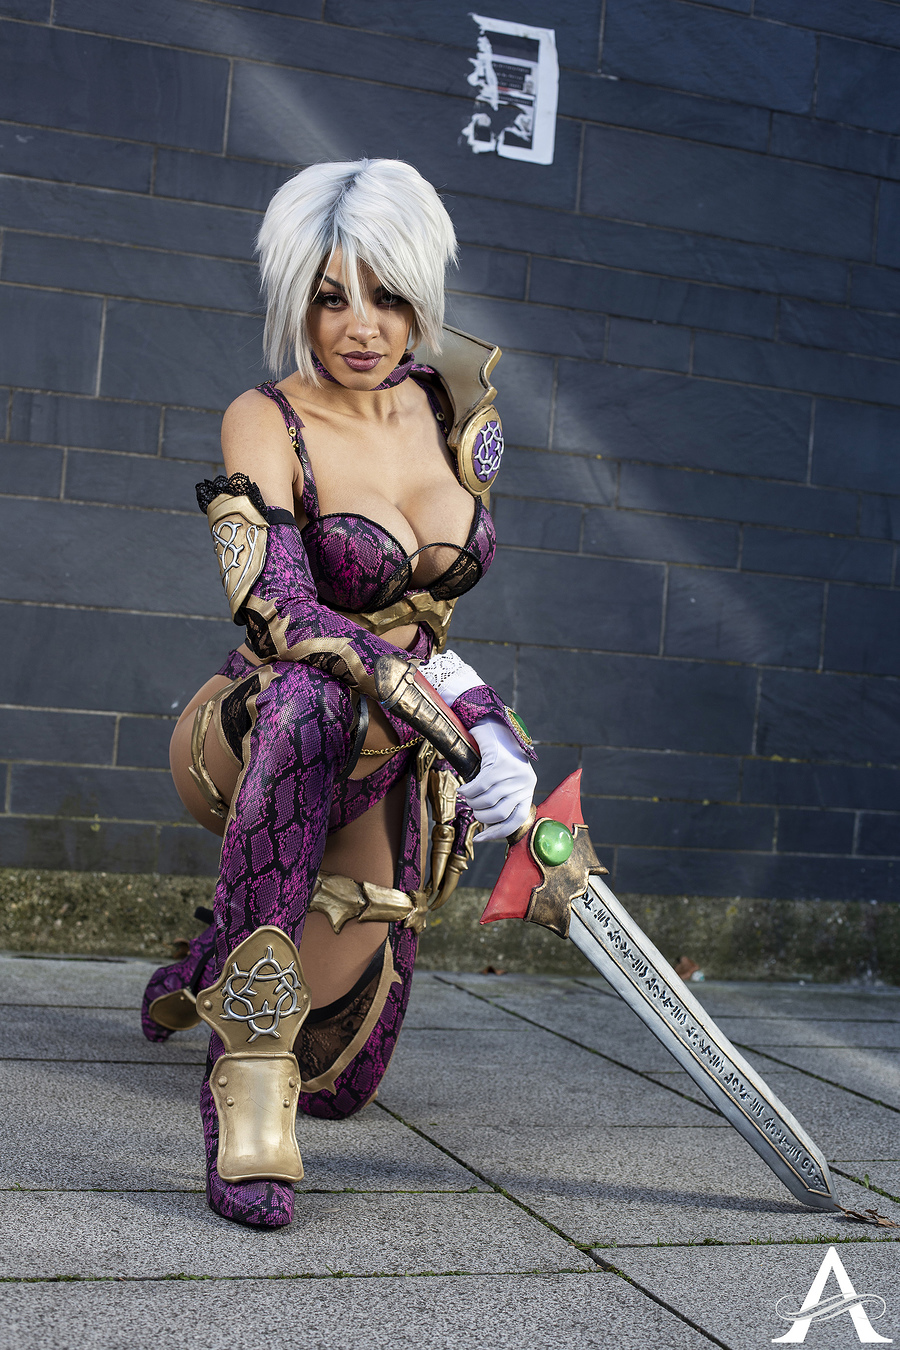 Lucidbelle - Ivy (Soul Calibur) / Photography by ~~Alucard~~ Photography / Uploaded 20th January 2021 @ 10:52 PM